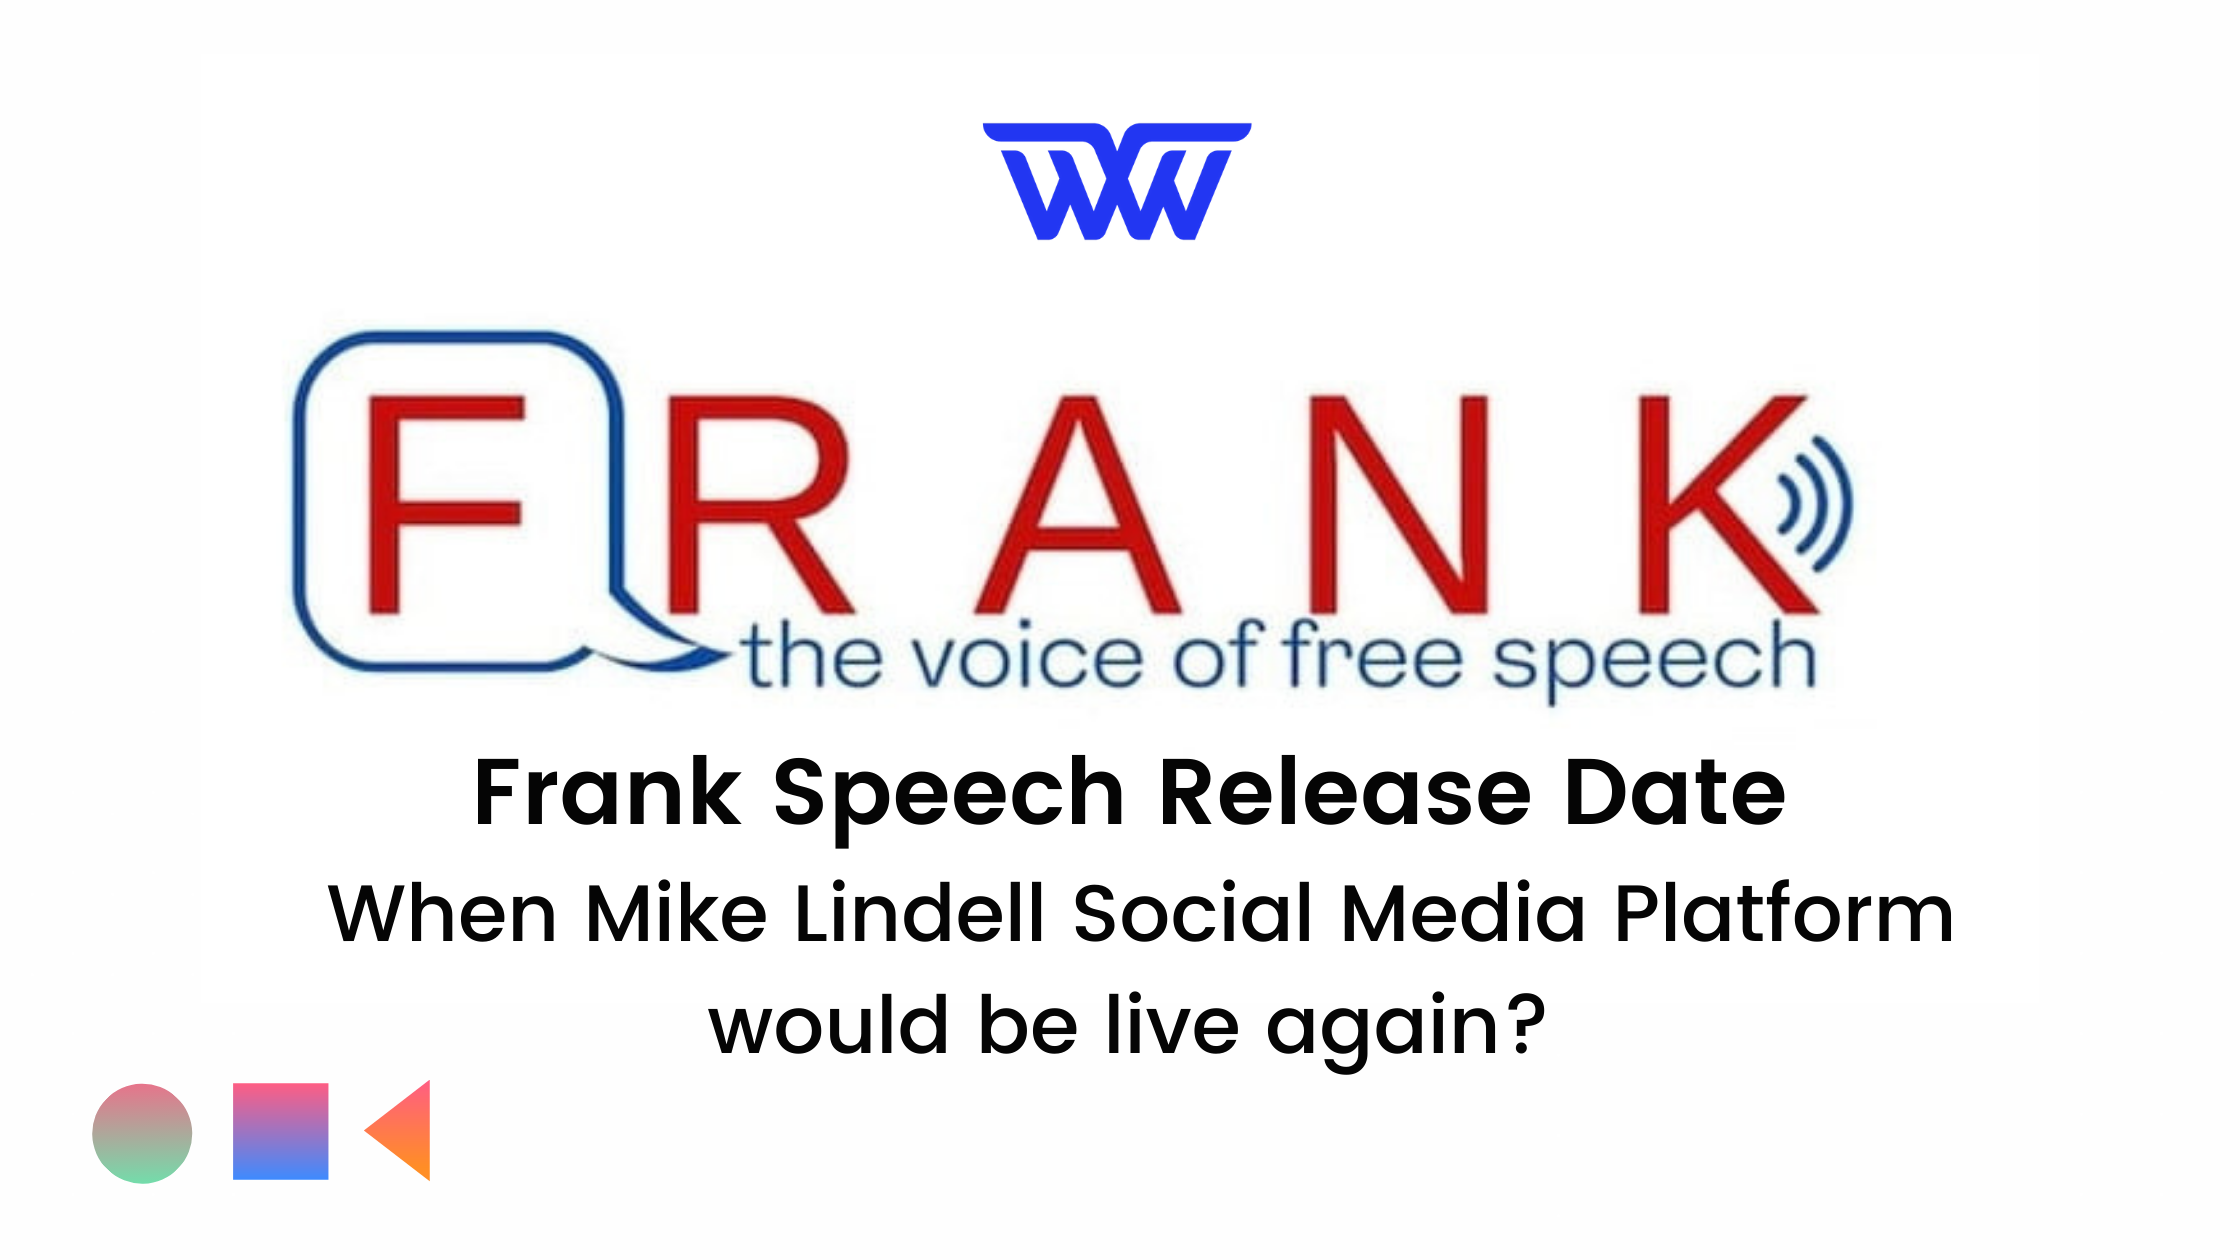 Frank Speech Release Date When Mike Lindell Social Media Platform would be live again?